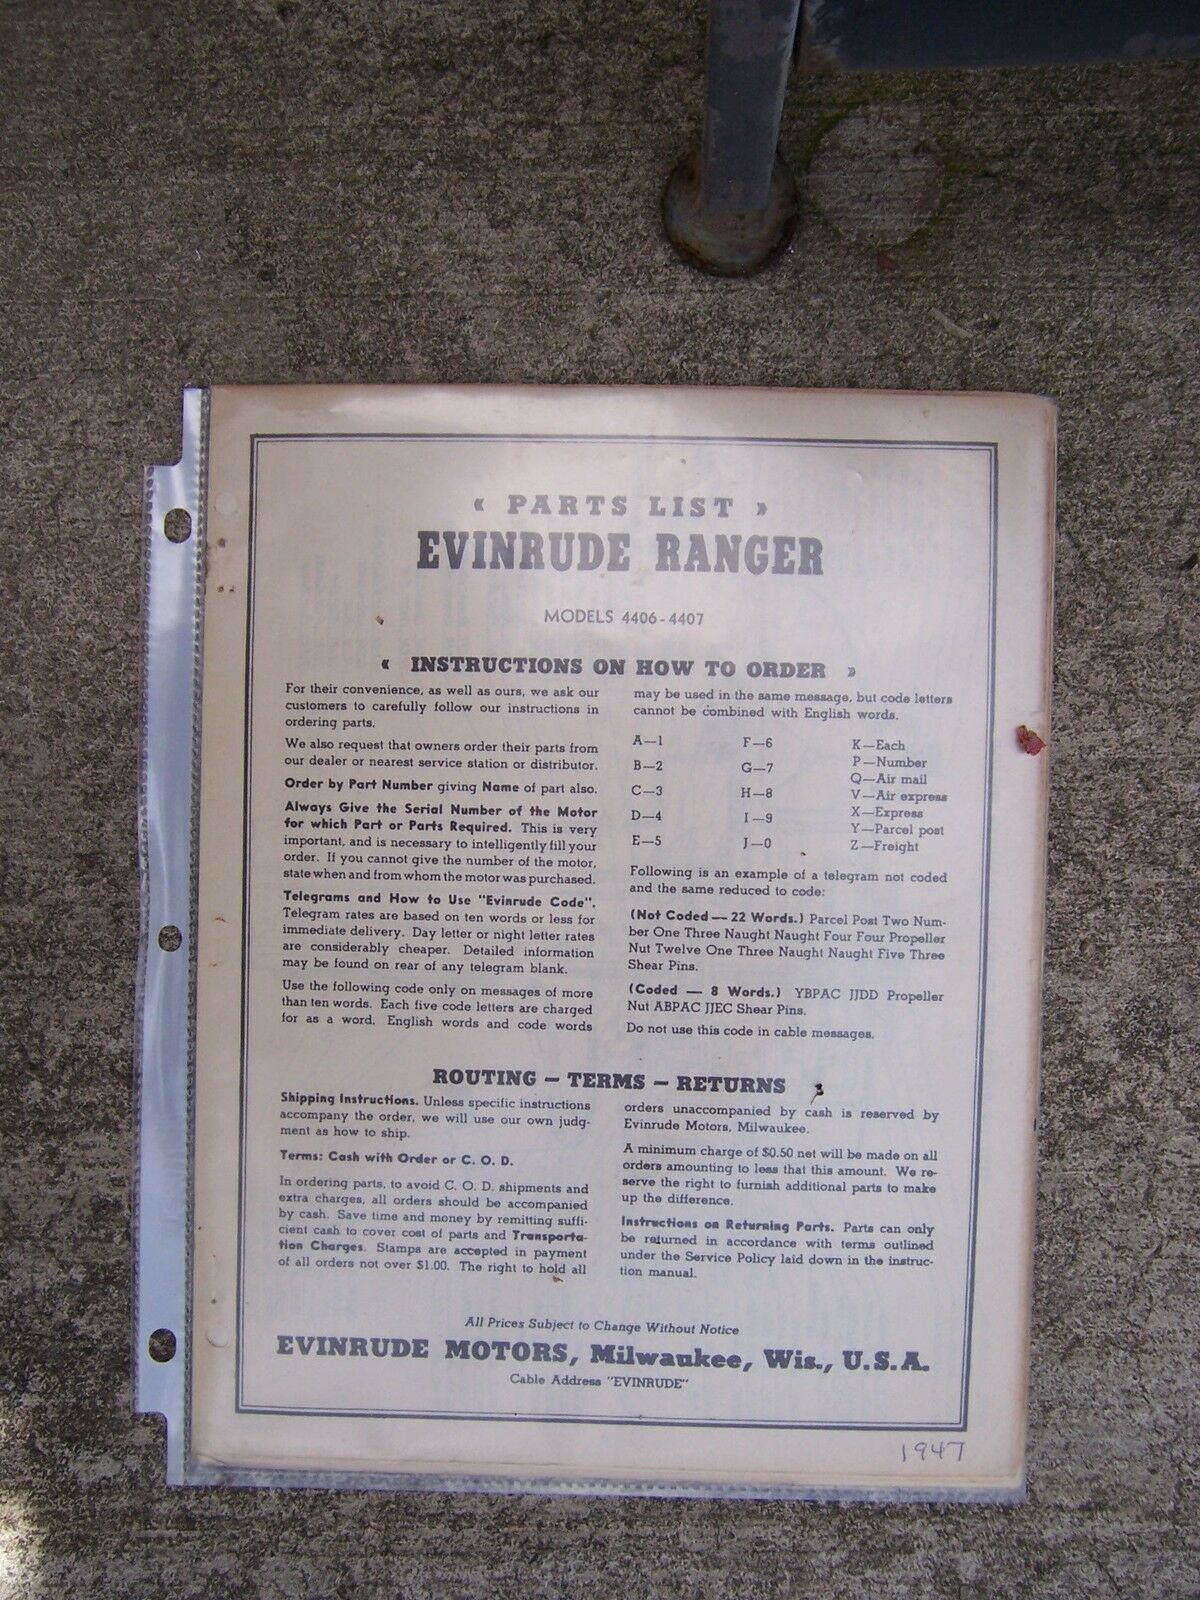 1947 Evinrude Ranger Outboard Motor Parts List 4406 4407 LOTS MORE IN STORE  L 1 of 1Only 1 available ...